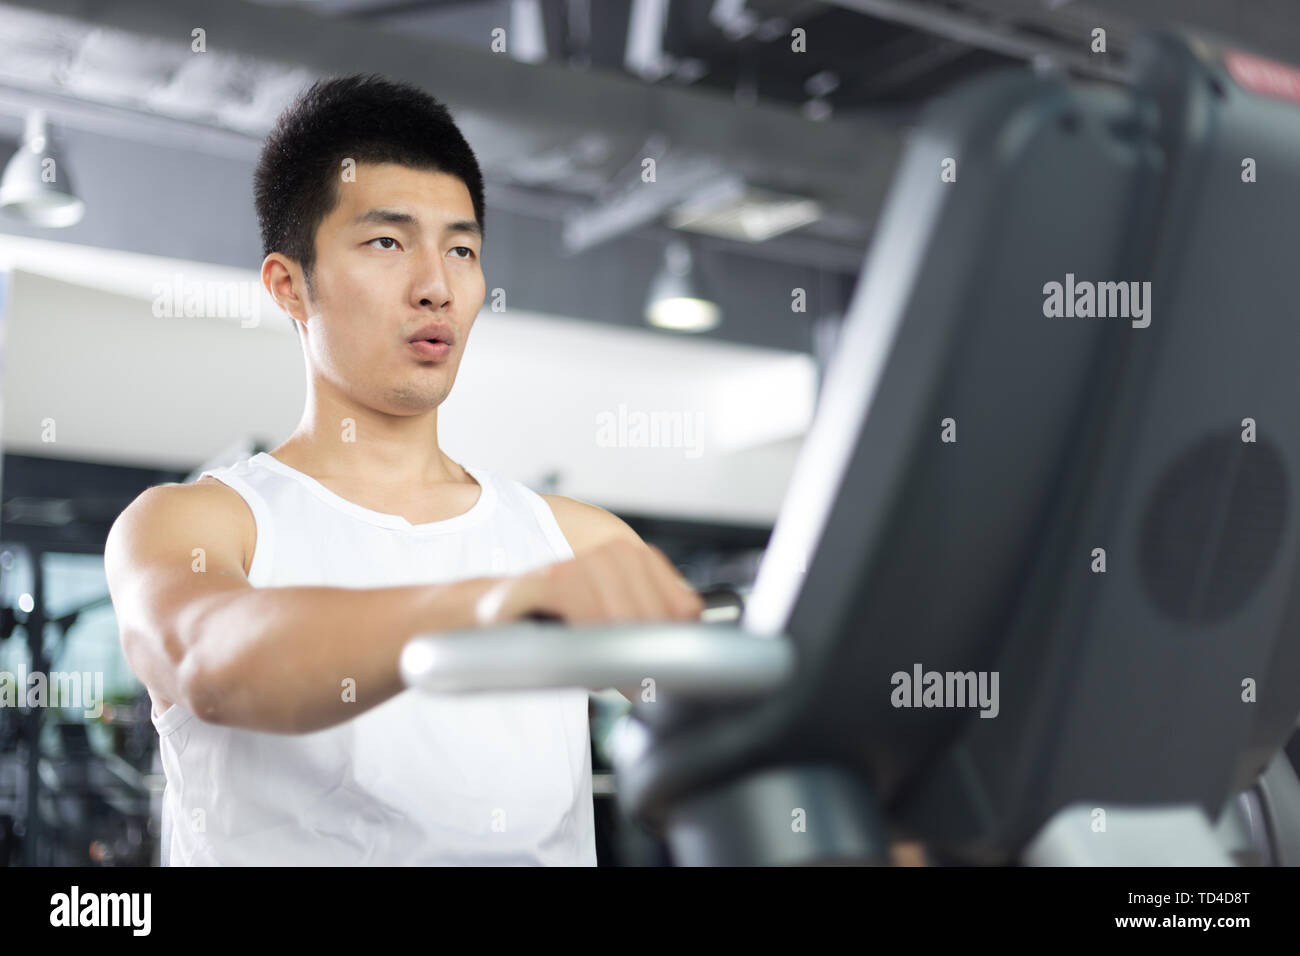 people working out in modern gym - Stock Image